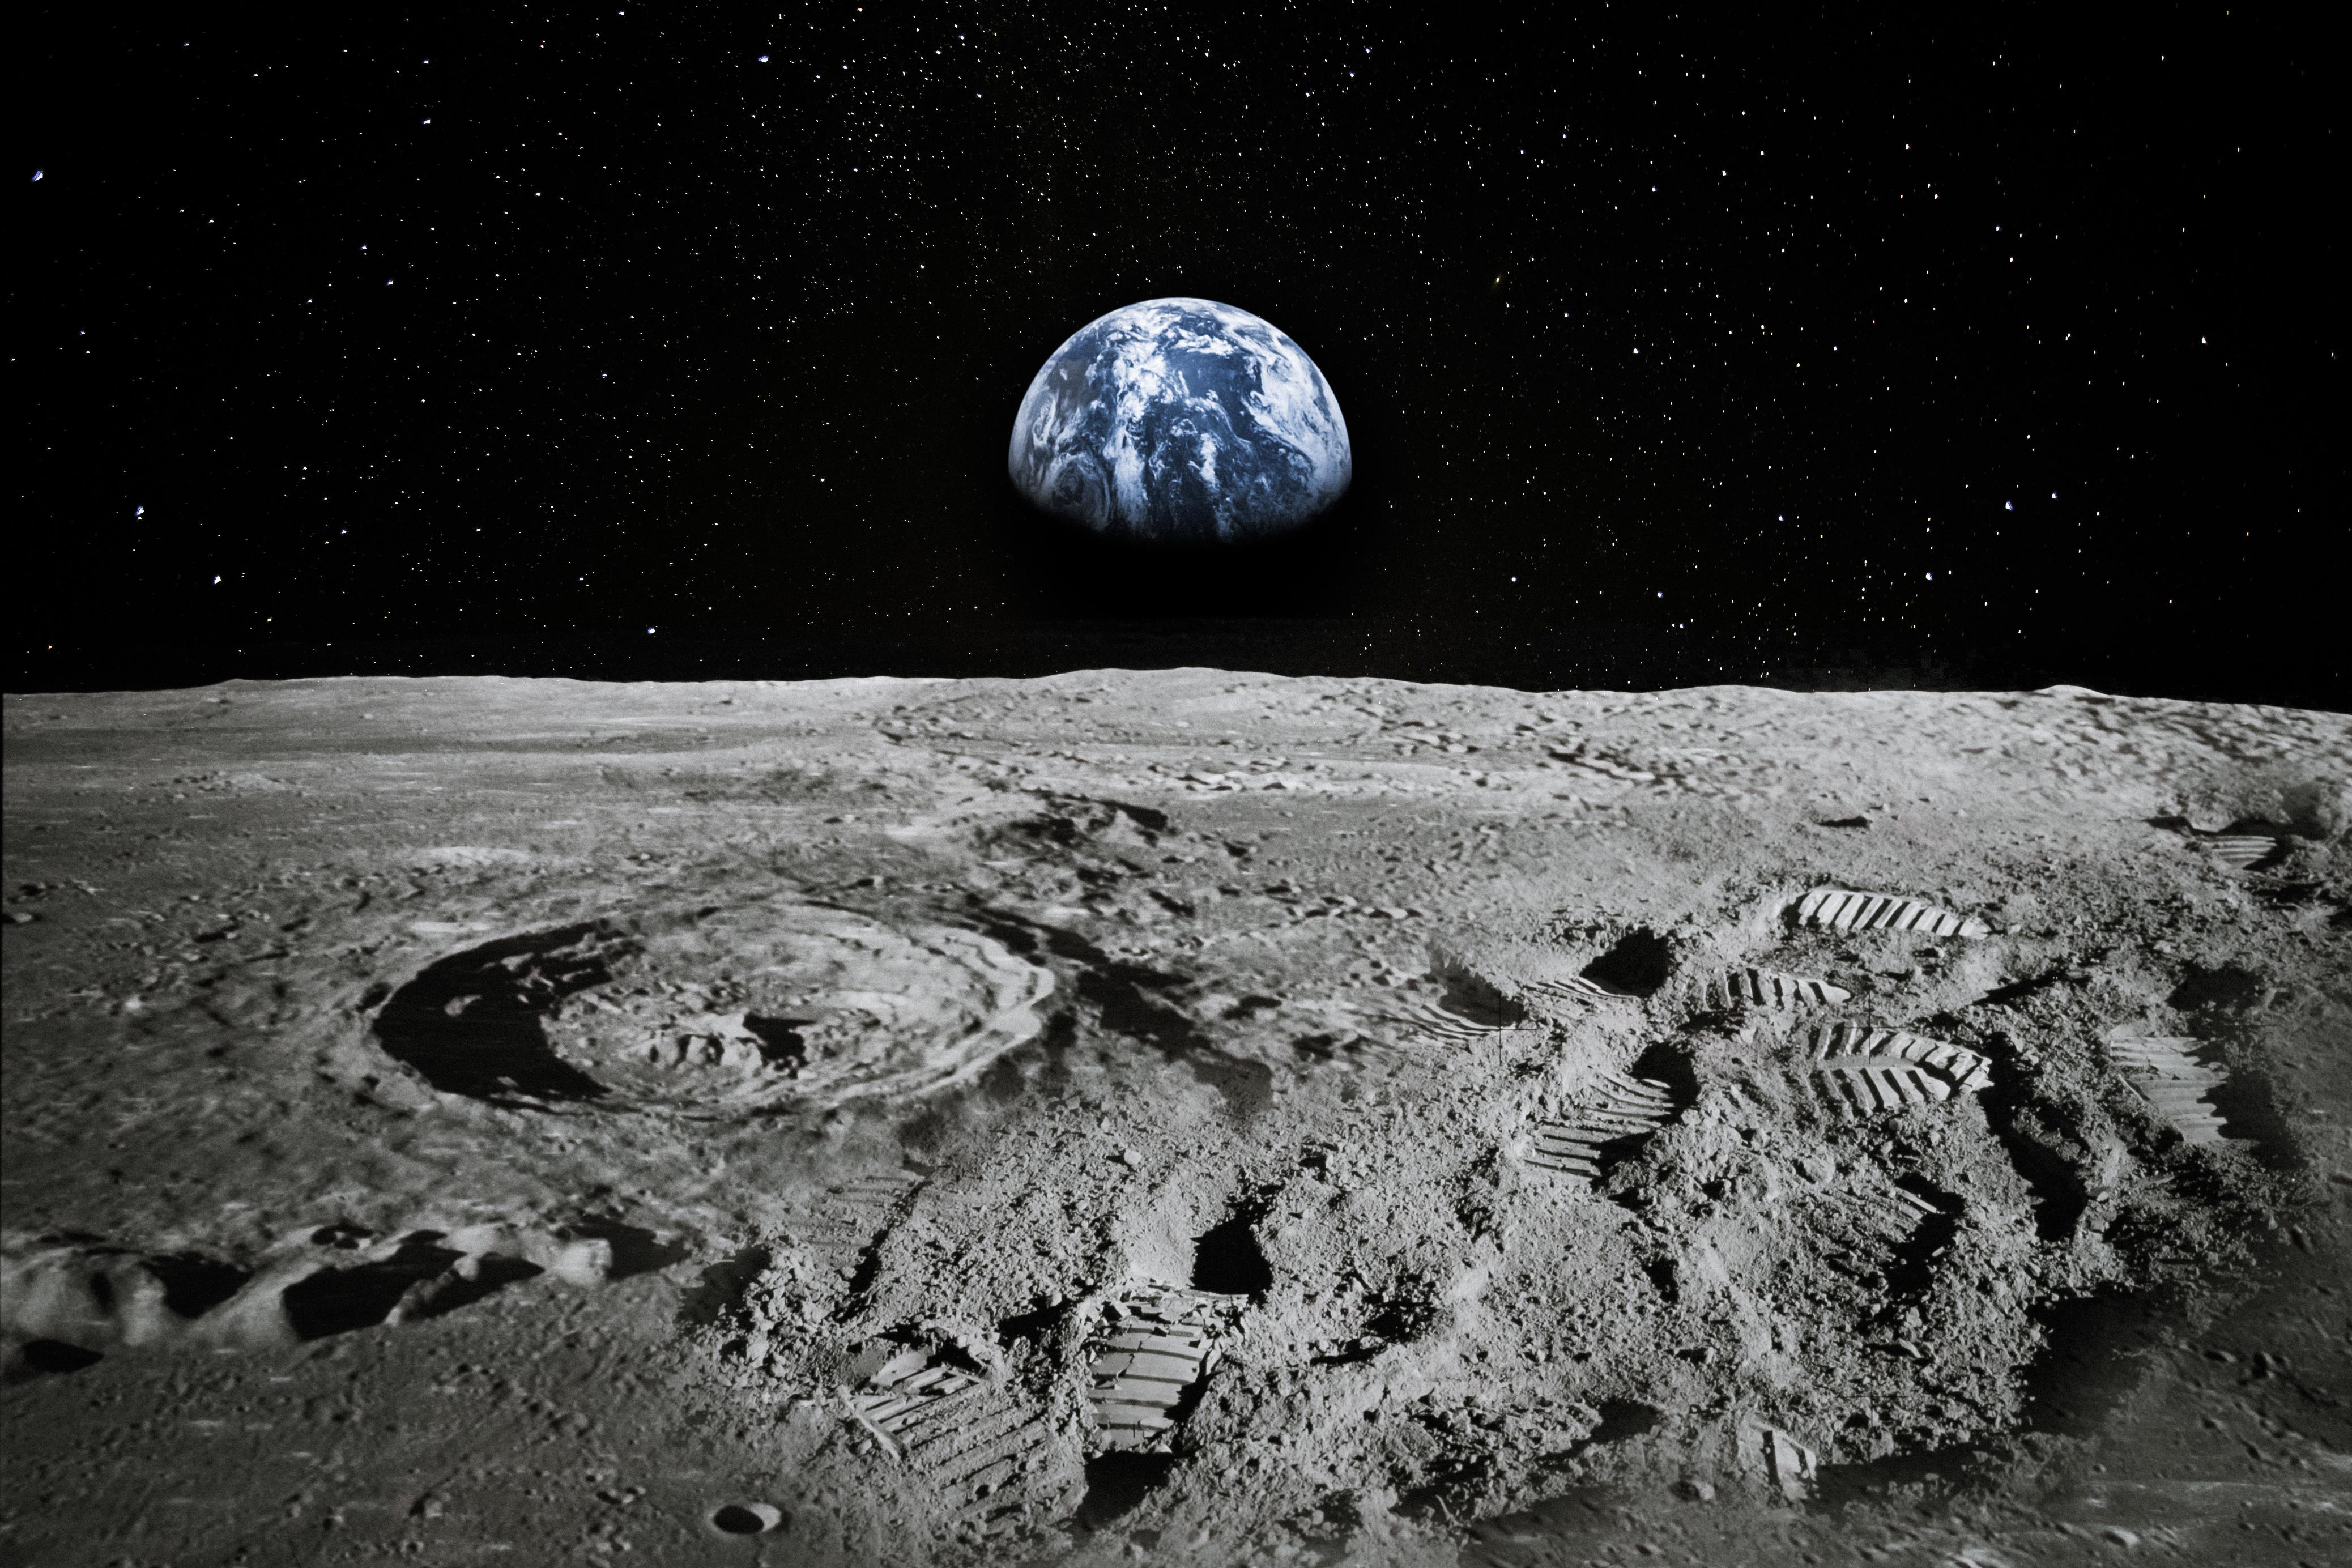 NASA will pay private companies to collect Moon dirt samples – Yahoo Finance Australia